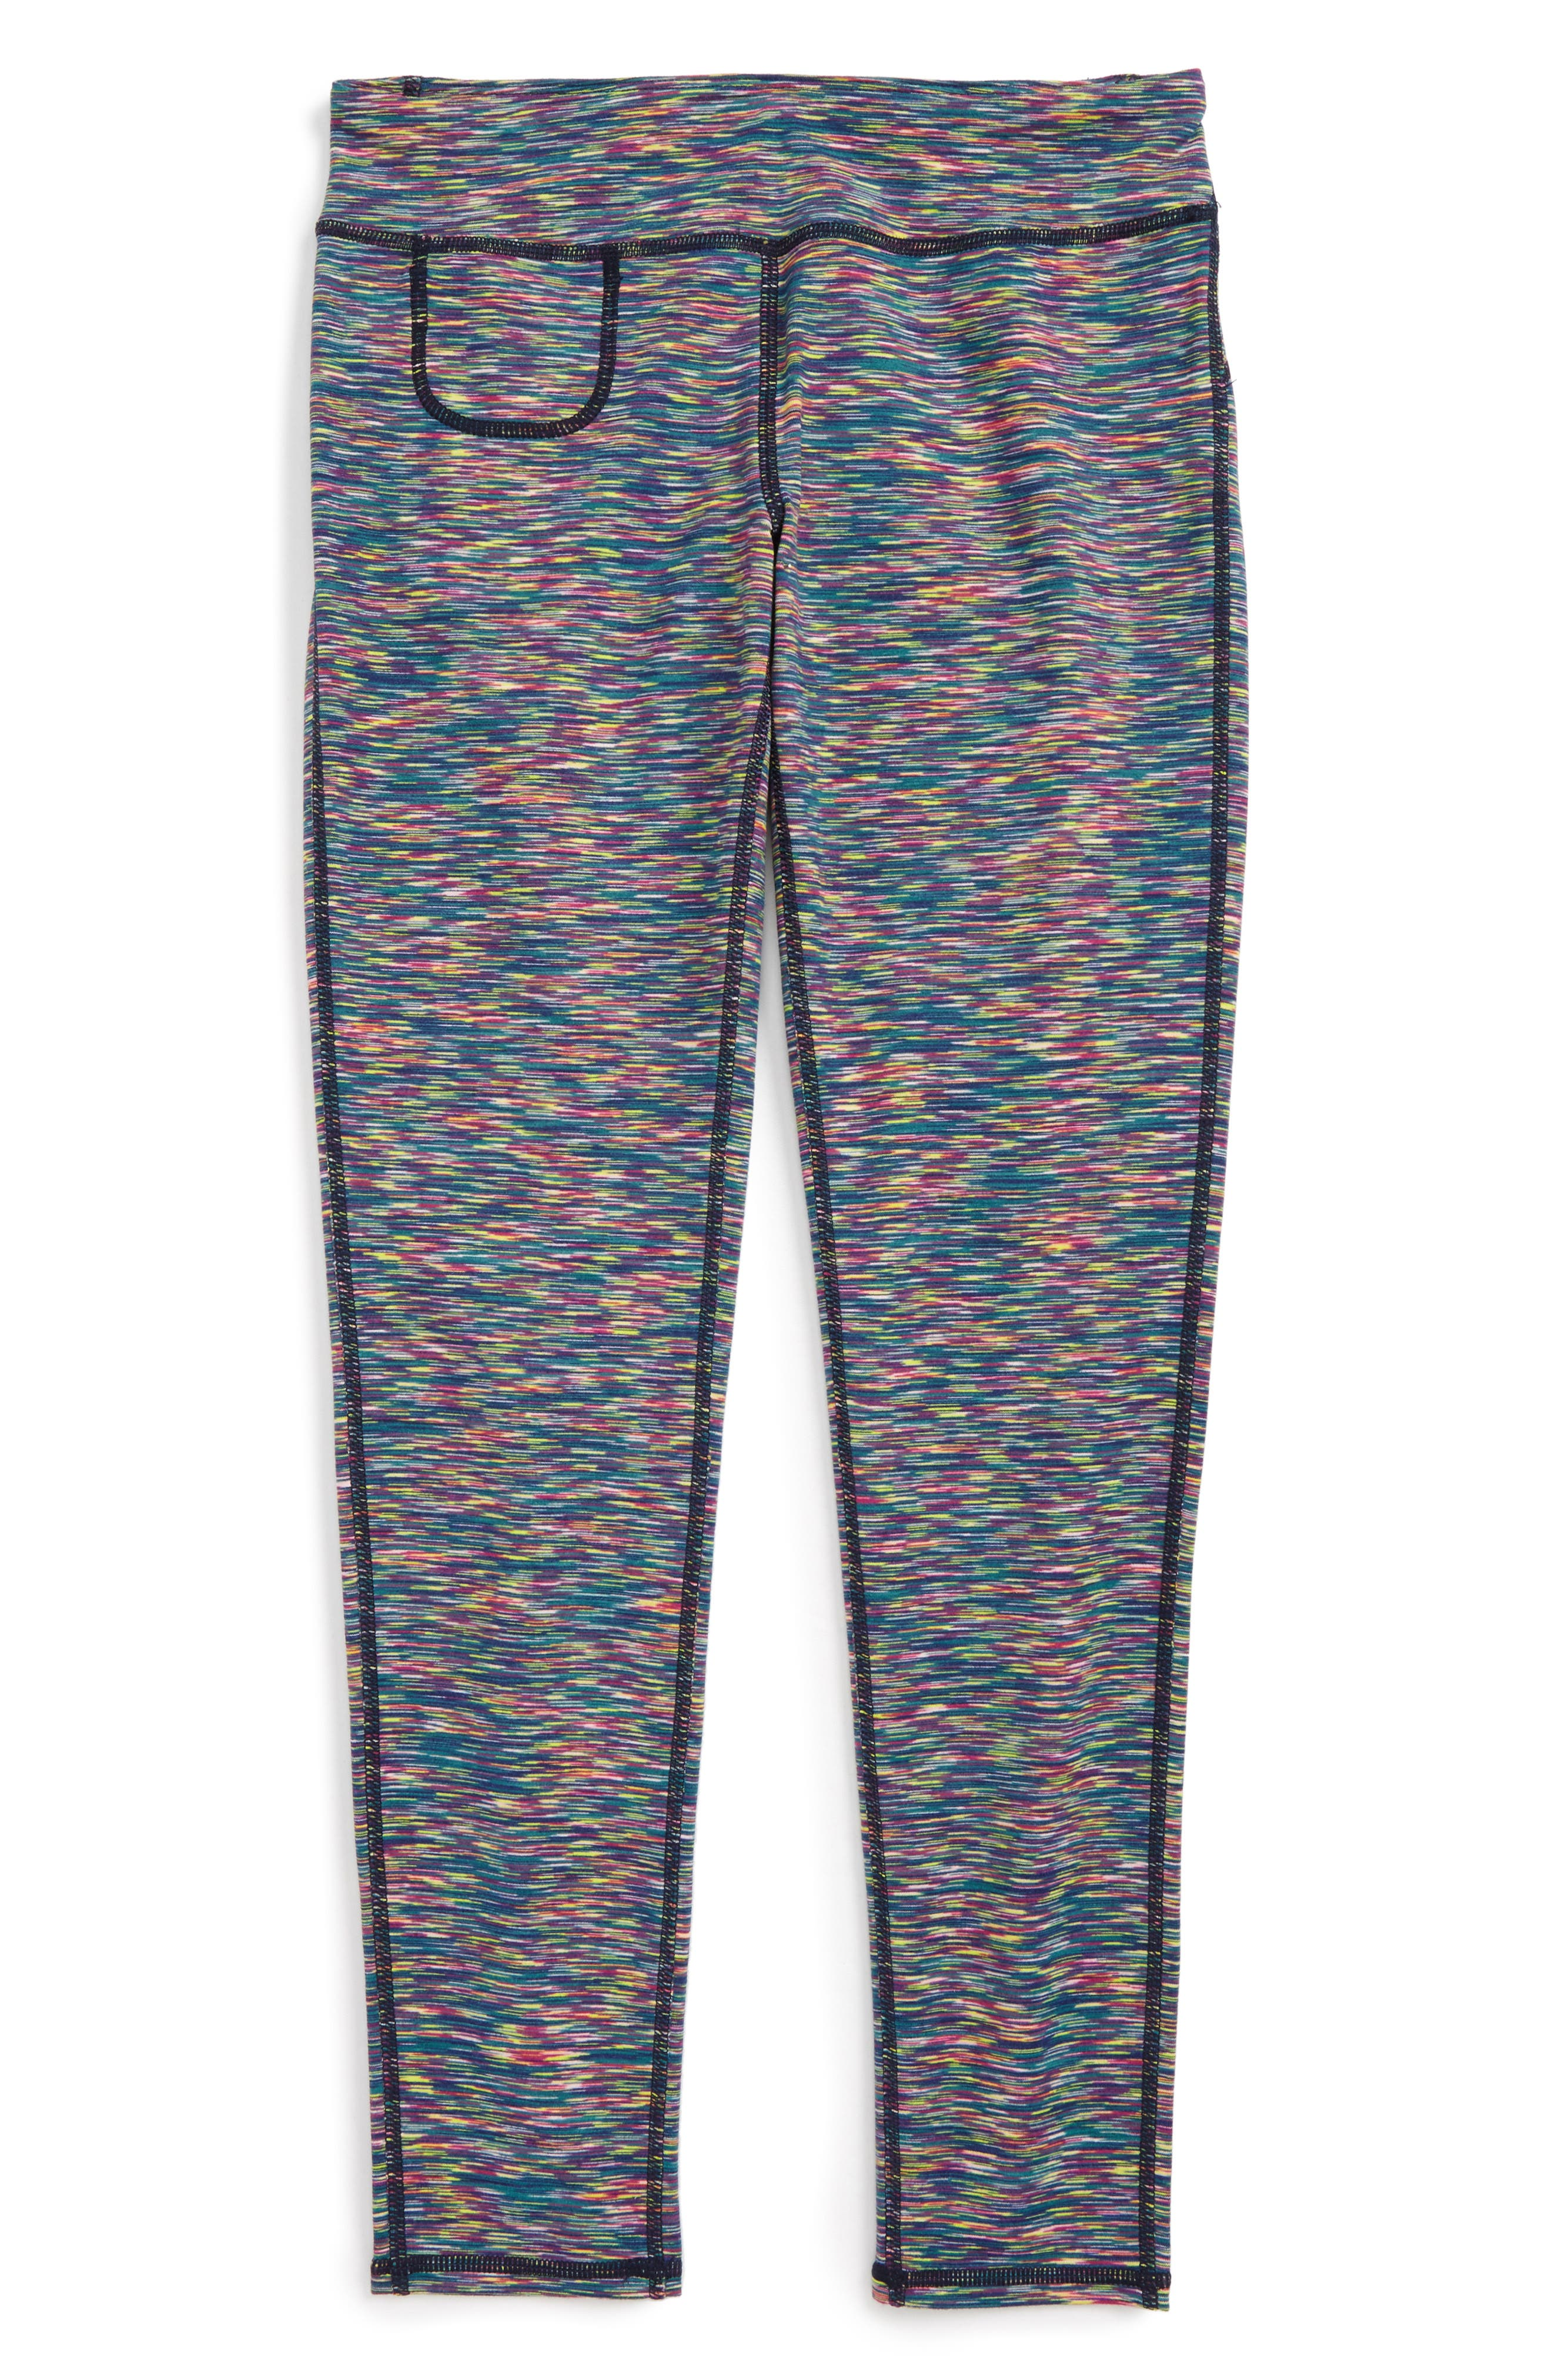 Zella Girl 'Cosmic Freedom' Print Leggings (Little Girls & Big Girls)